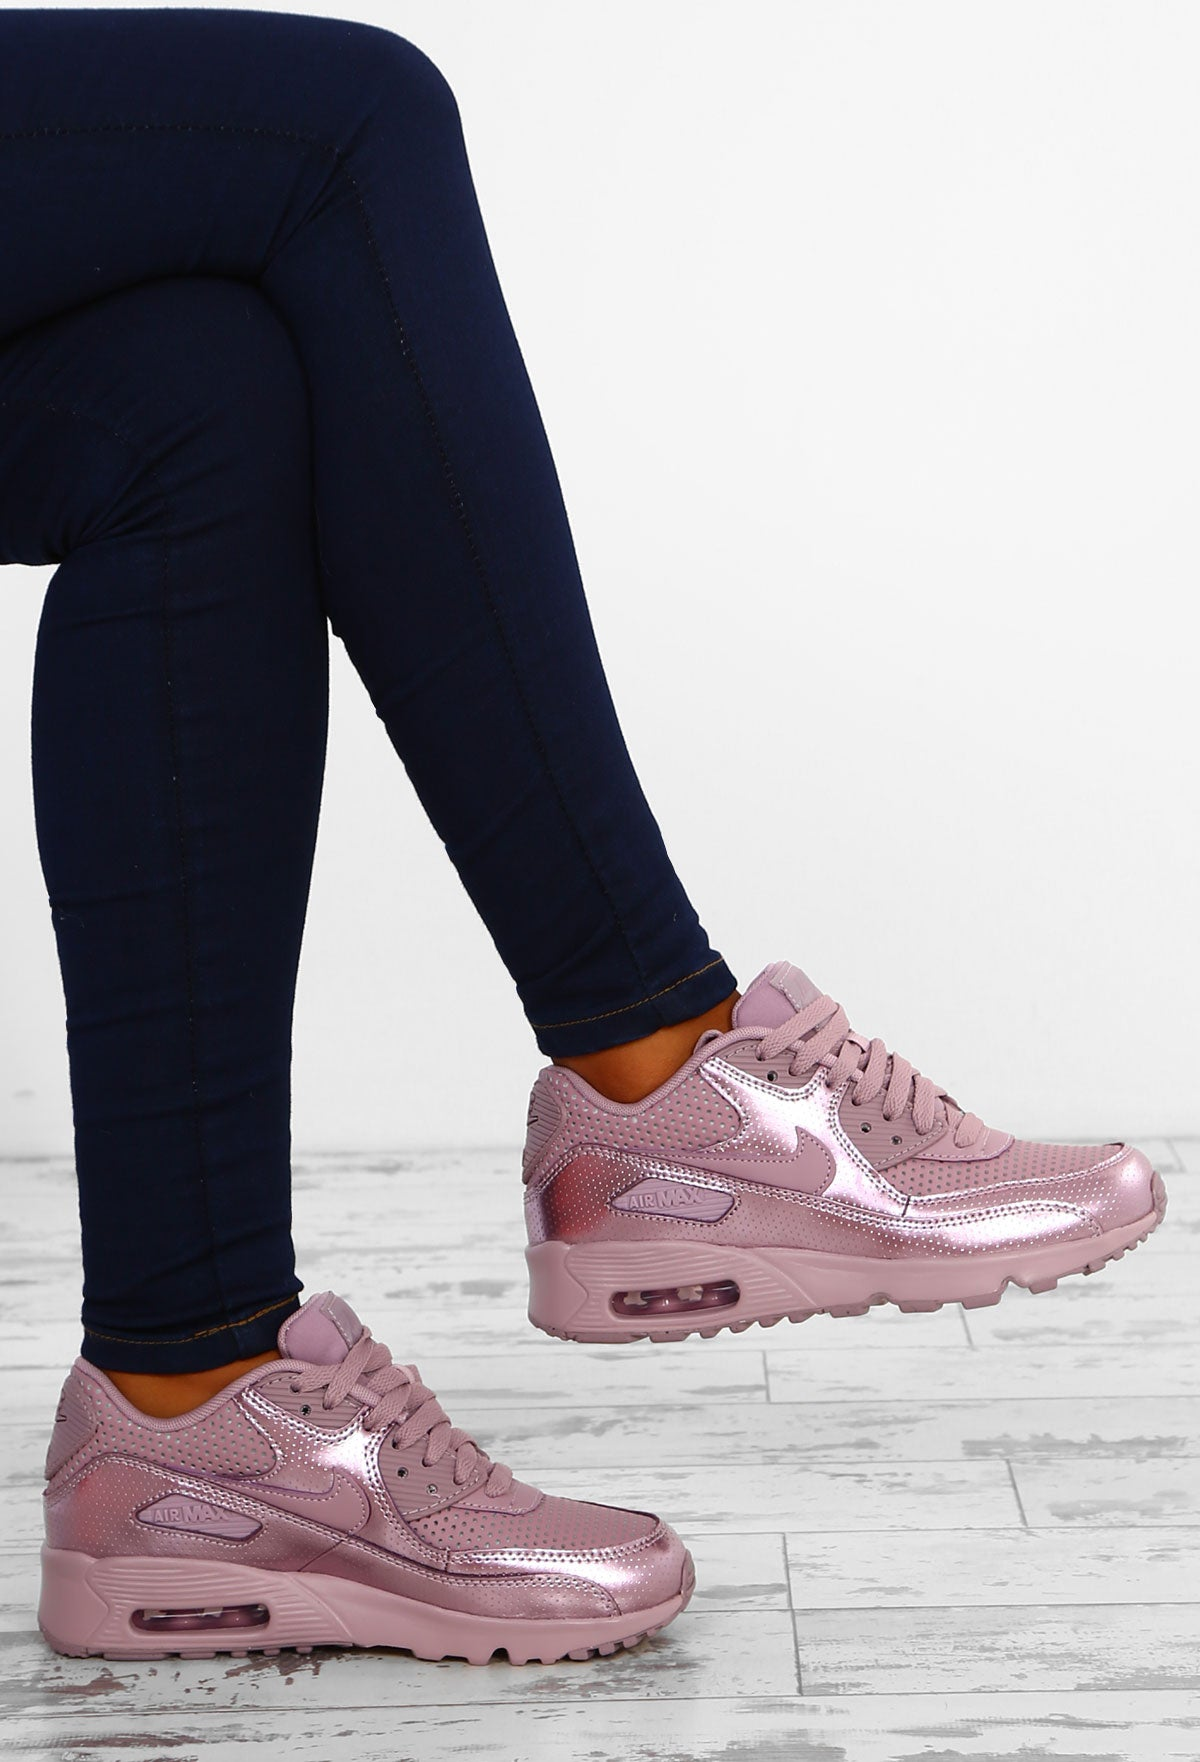 la meilleure attitude 4f112 34c0d Nike Air Max 90 SE Elemental Rose Trainers – Pink Boutique UK